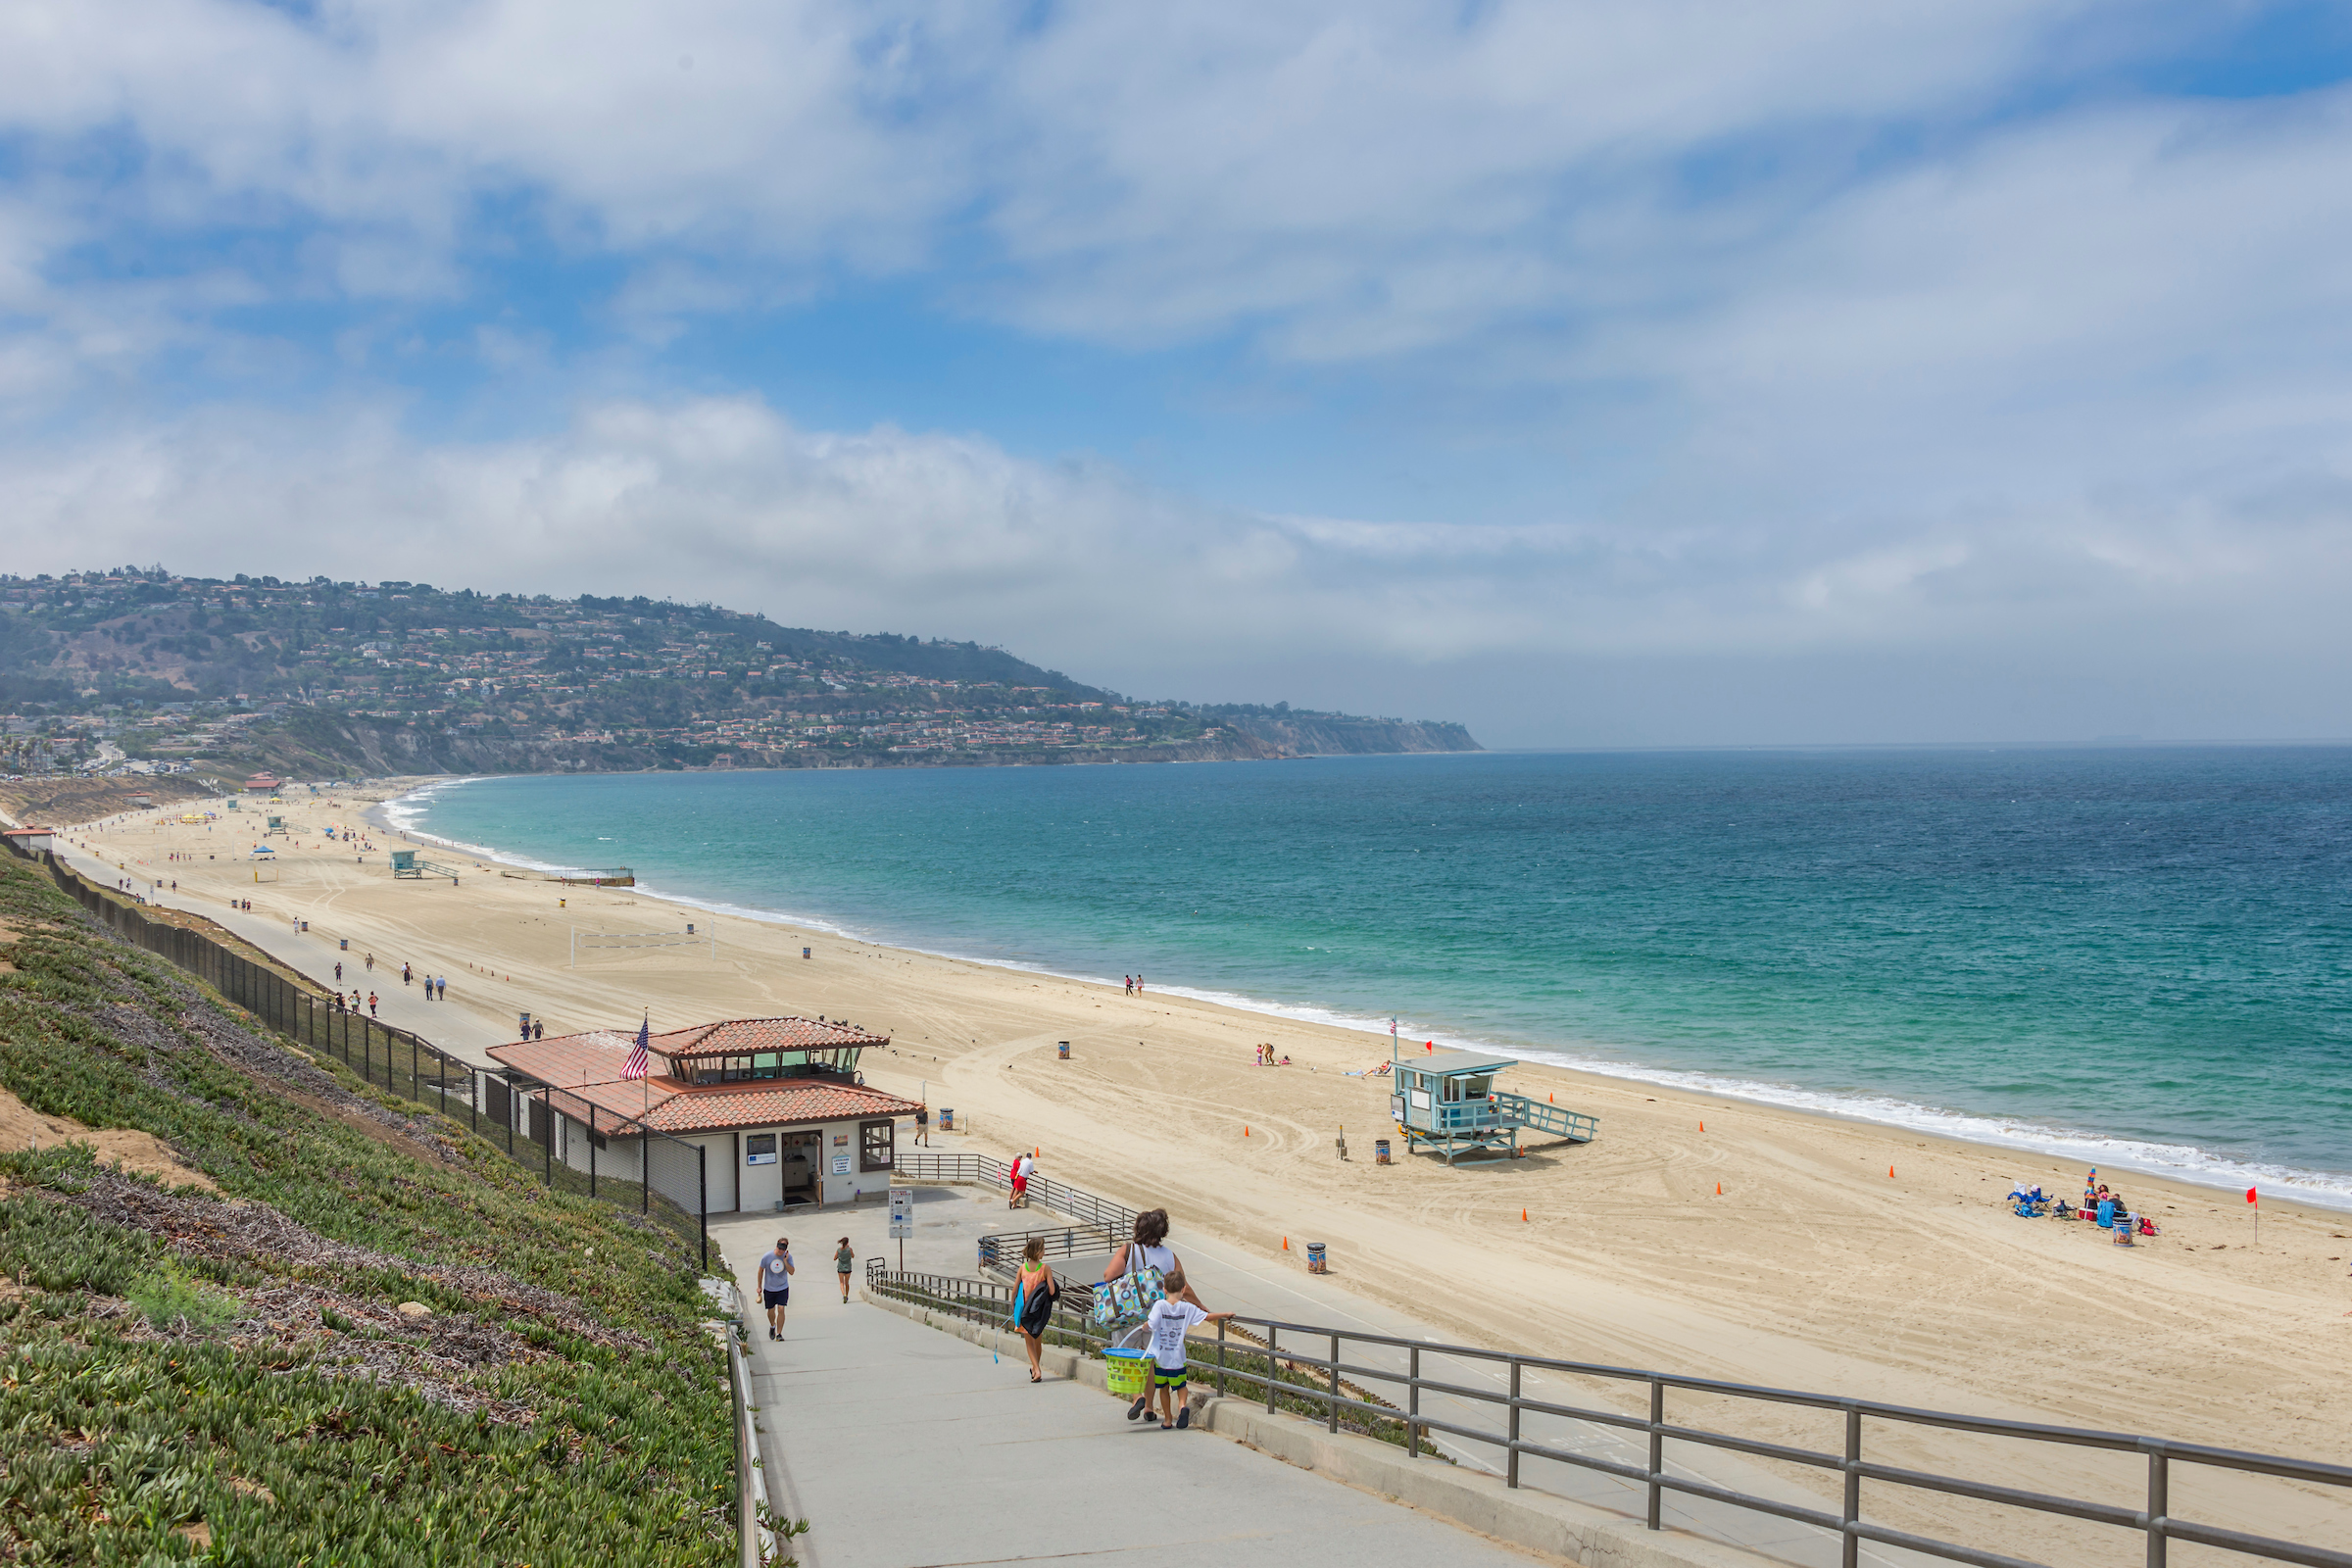 Book your tickets online for the top things to do in Redondo Beach, California on TripAdvisor: See 8, traveler reviews and photos of Redondo Beach tourist attractions. Find what to do today, this weekend, or in October. We have reviews of the best places to see in Redondo Beach. Visit top-rated & must-see attractions.